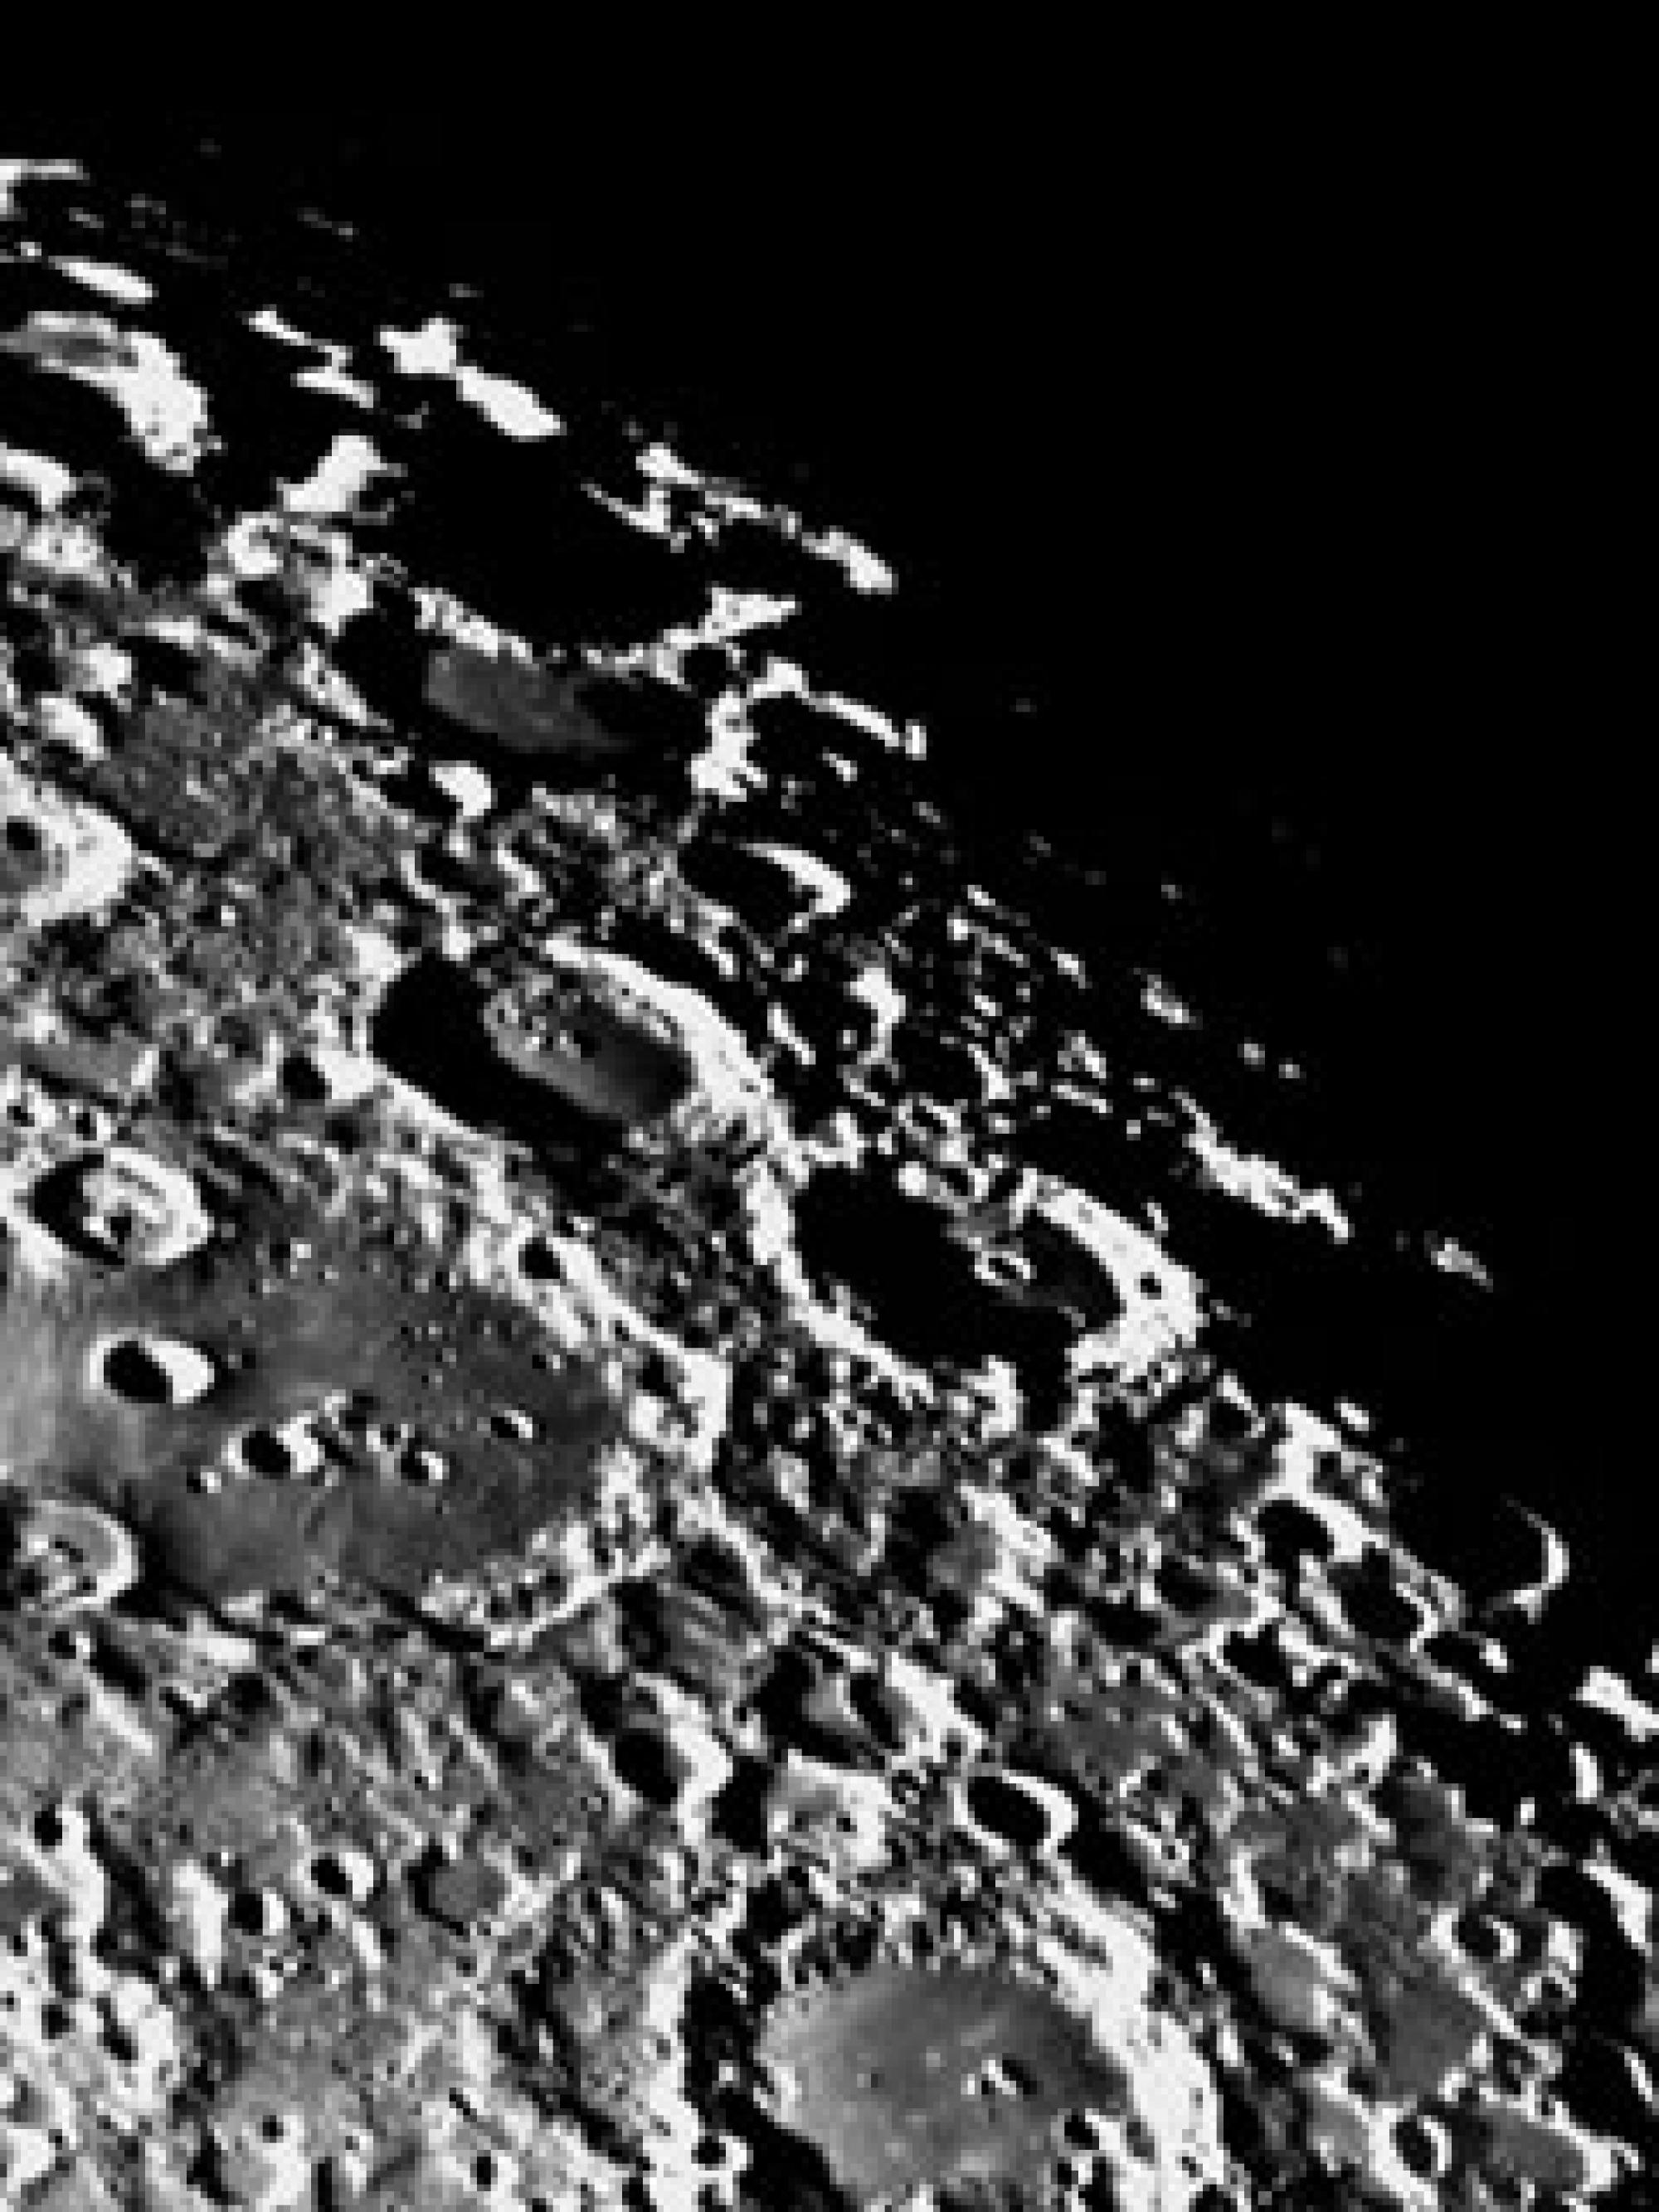 This is an image of the lunar highlands from the Consolidated LunarAtlas, which was produced during the Apollo Era by the UA Lunar and Planetary Laboratory. The new study by Strom, Malhotra, Kring and their Japanese colleagues indicates this terrain was b